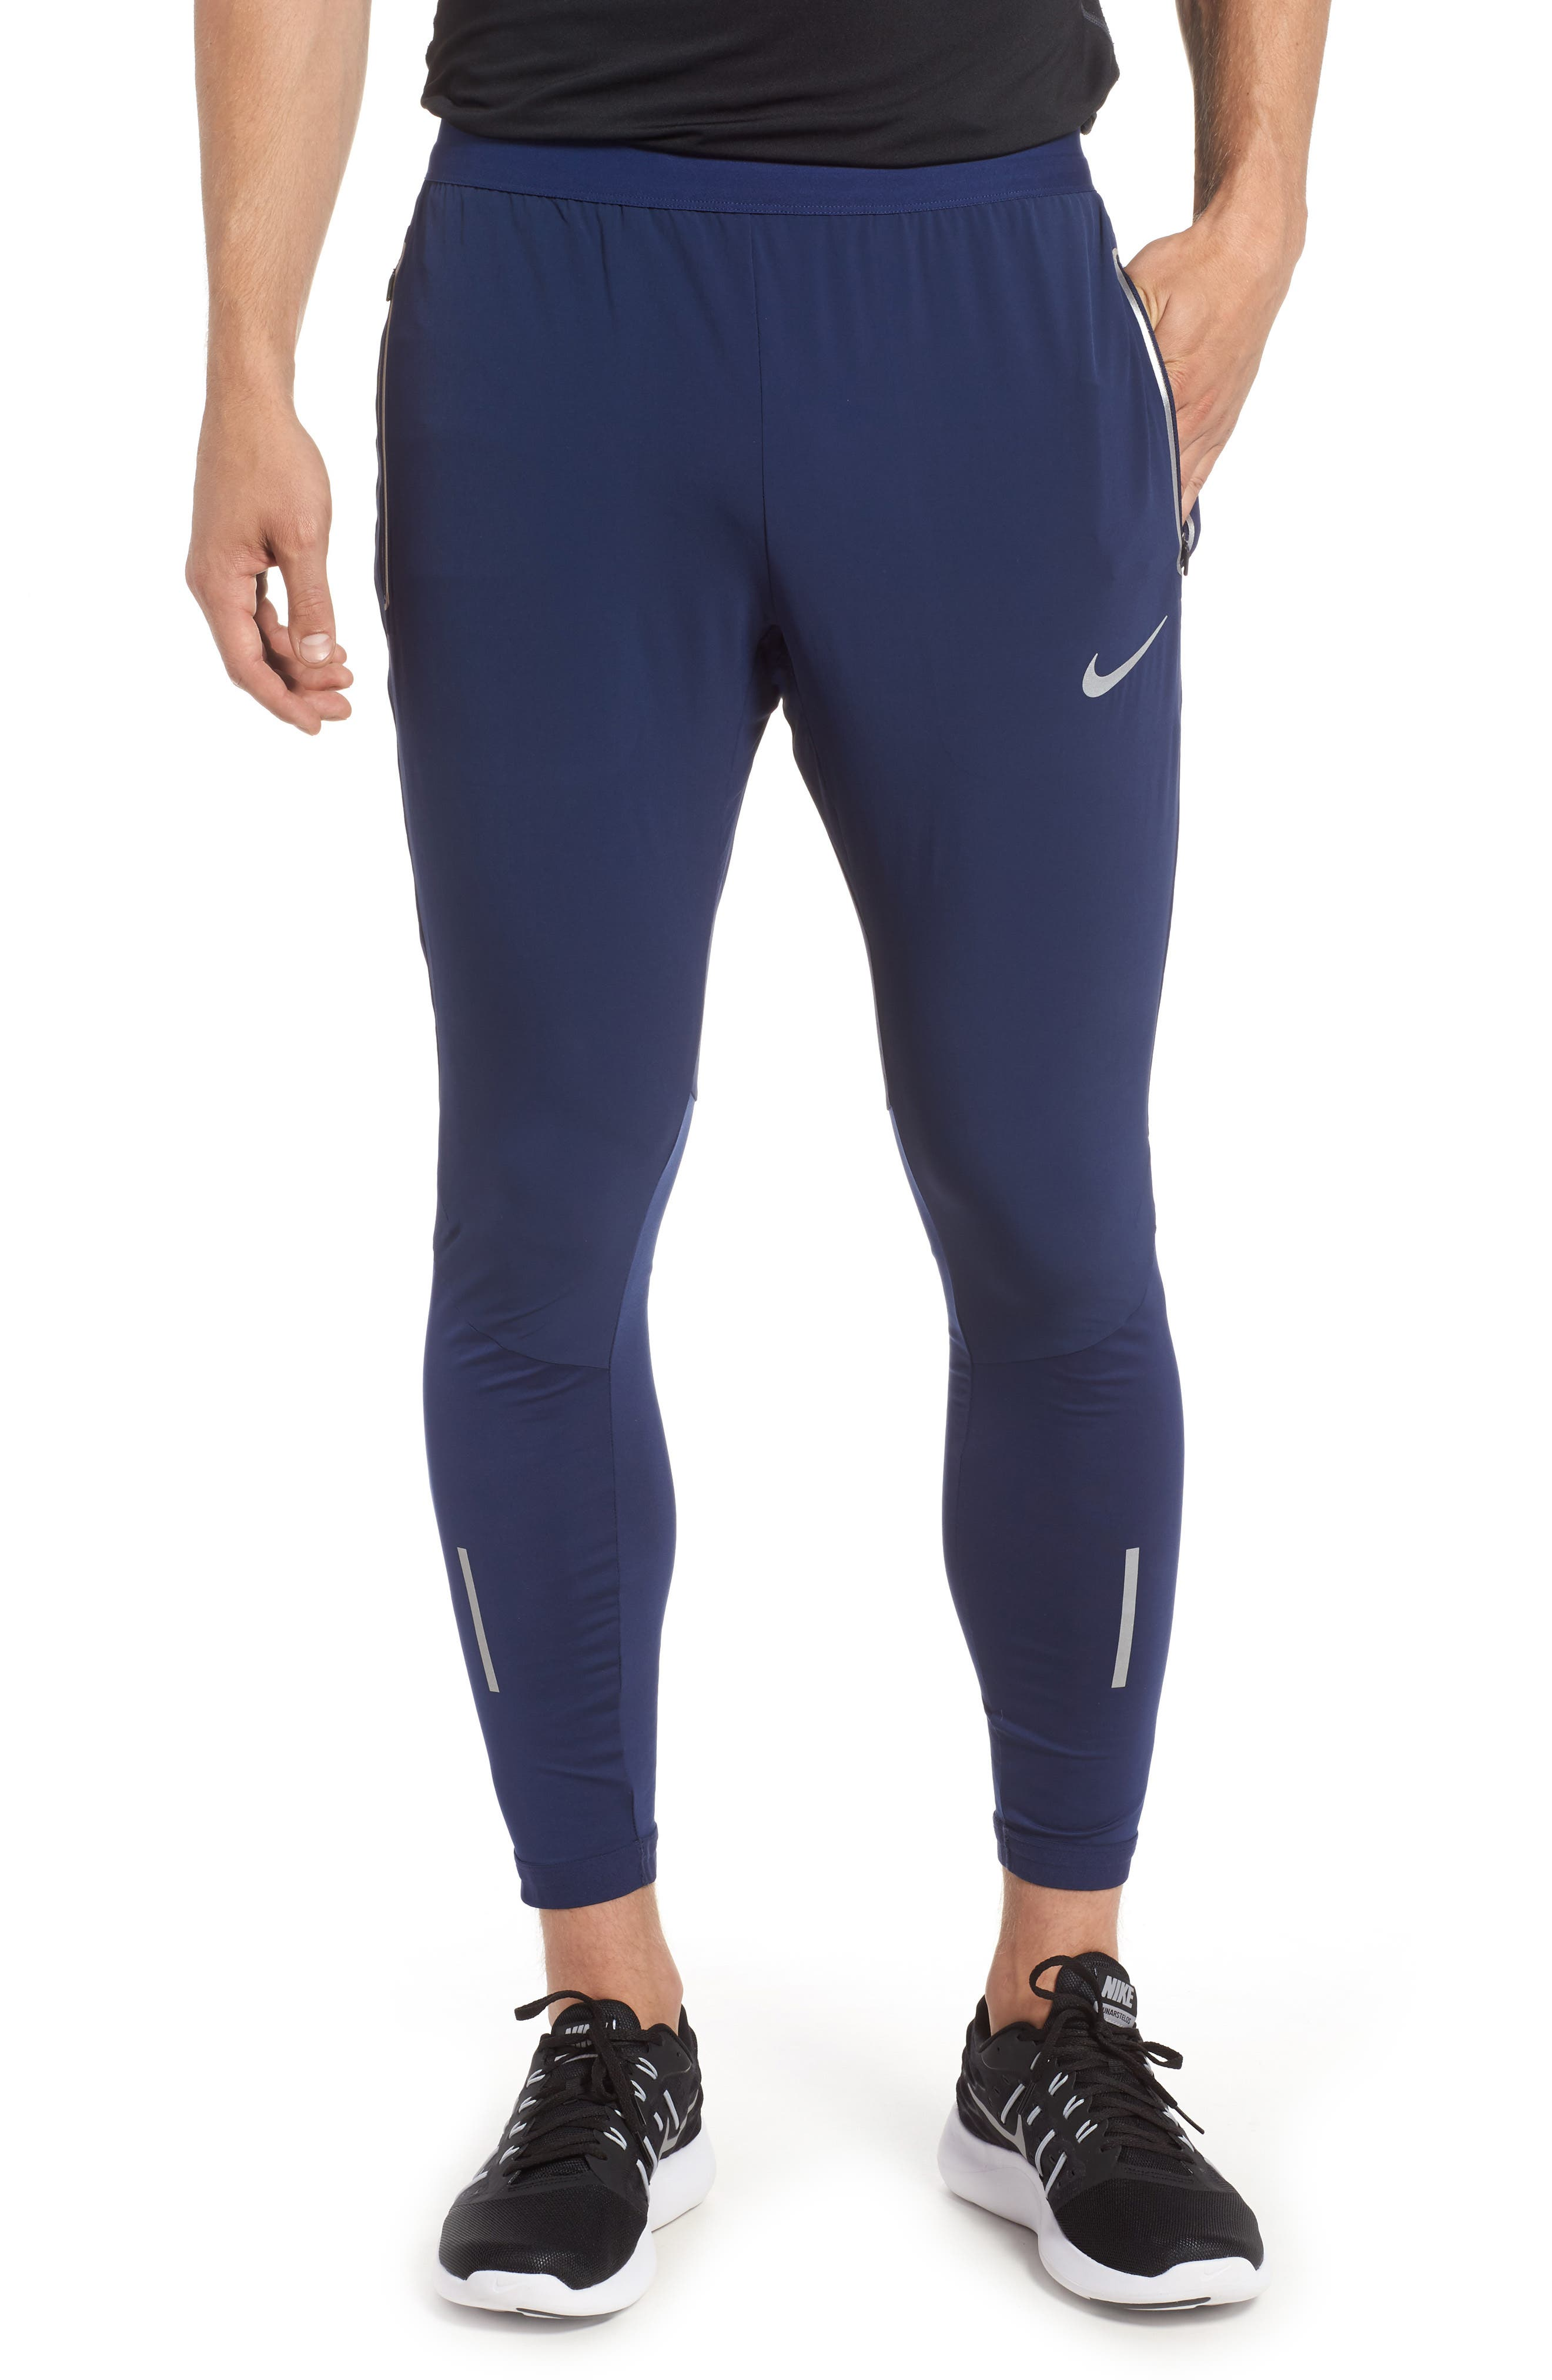 Nike Flex Running Pants